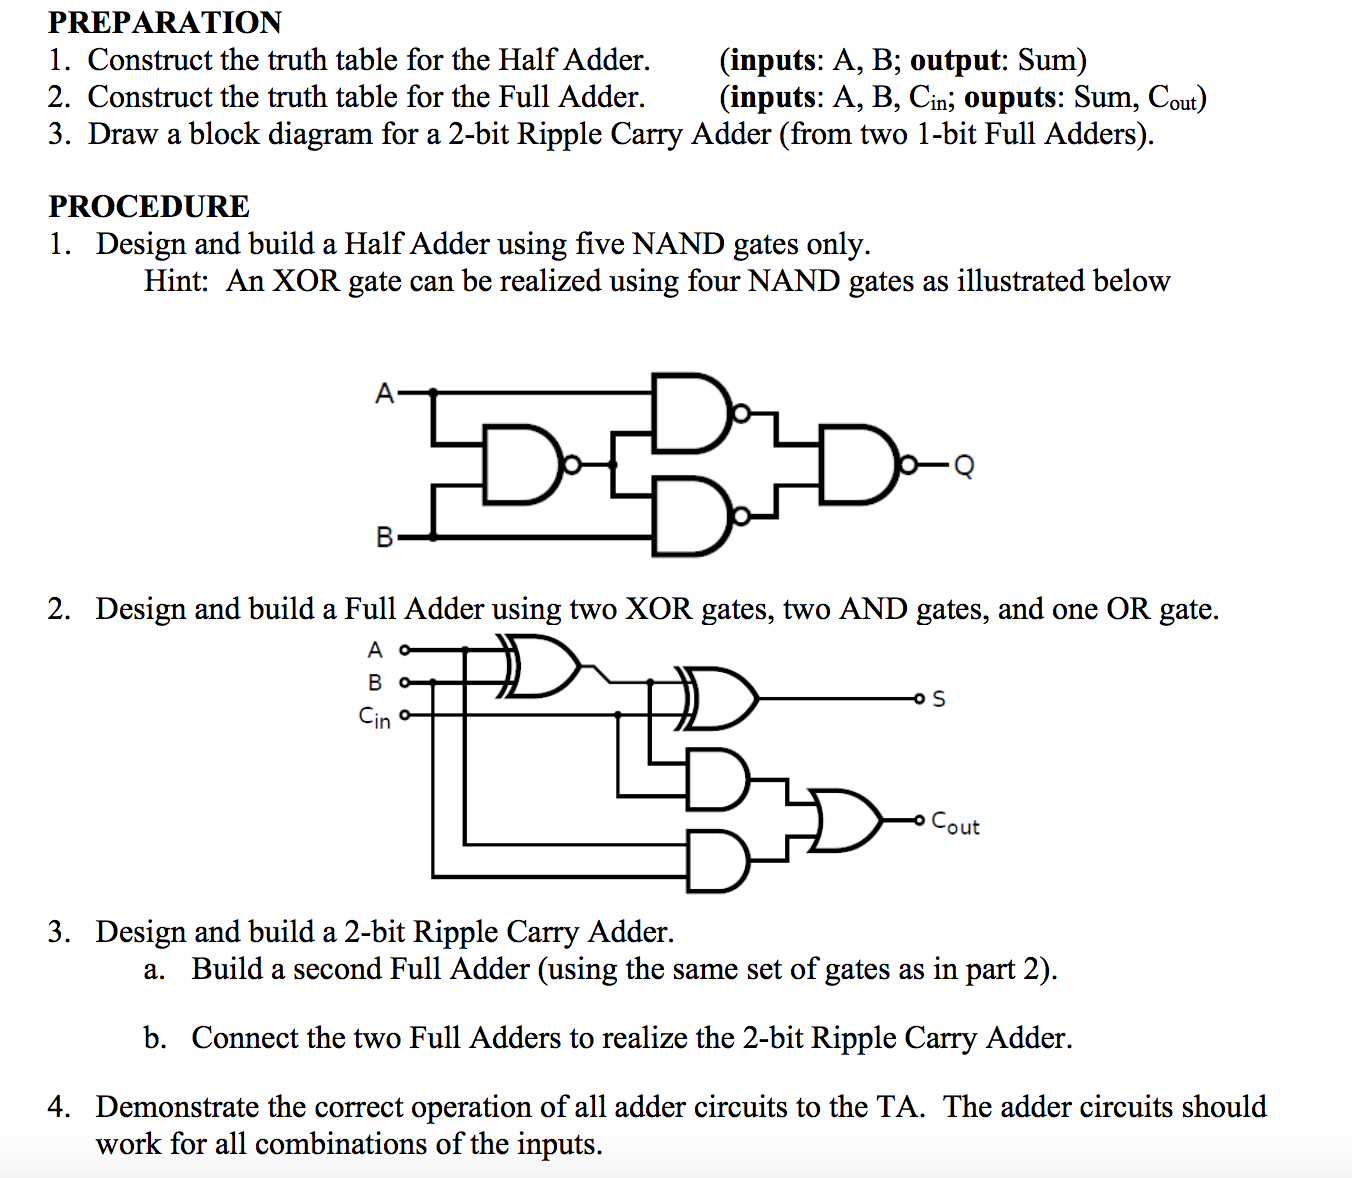 Block Diagram Bcd Adder: Solved: Construct The Truth Table For The Half Adder. (inp